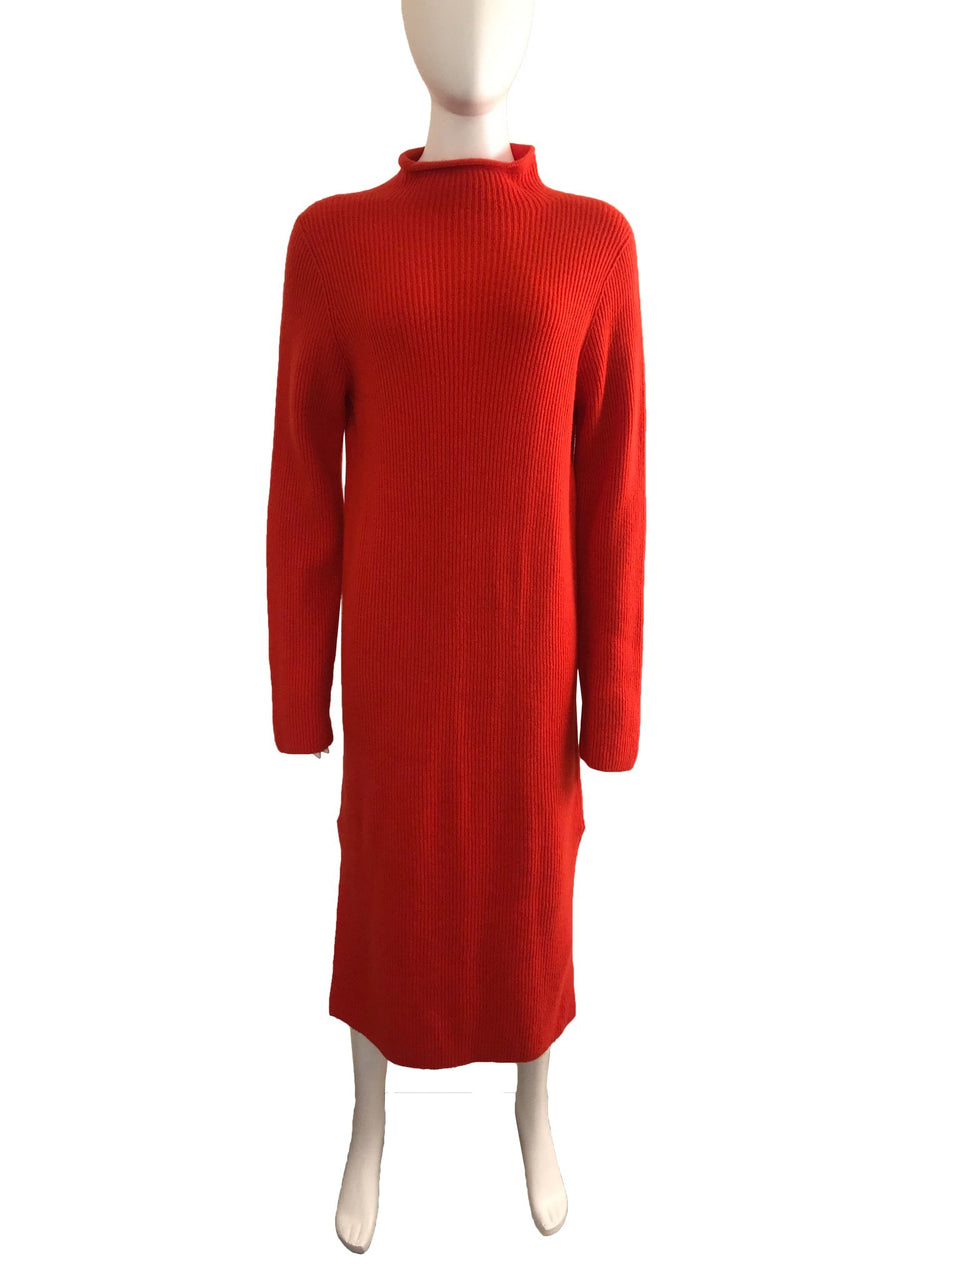 Ribbed Midi Length Sweater Dress